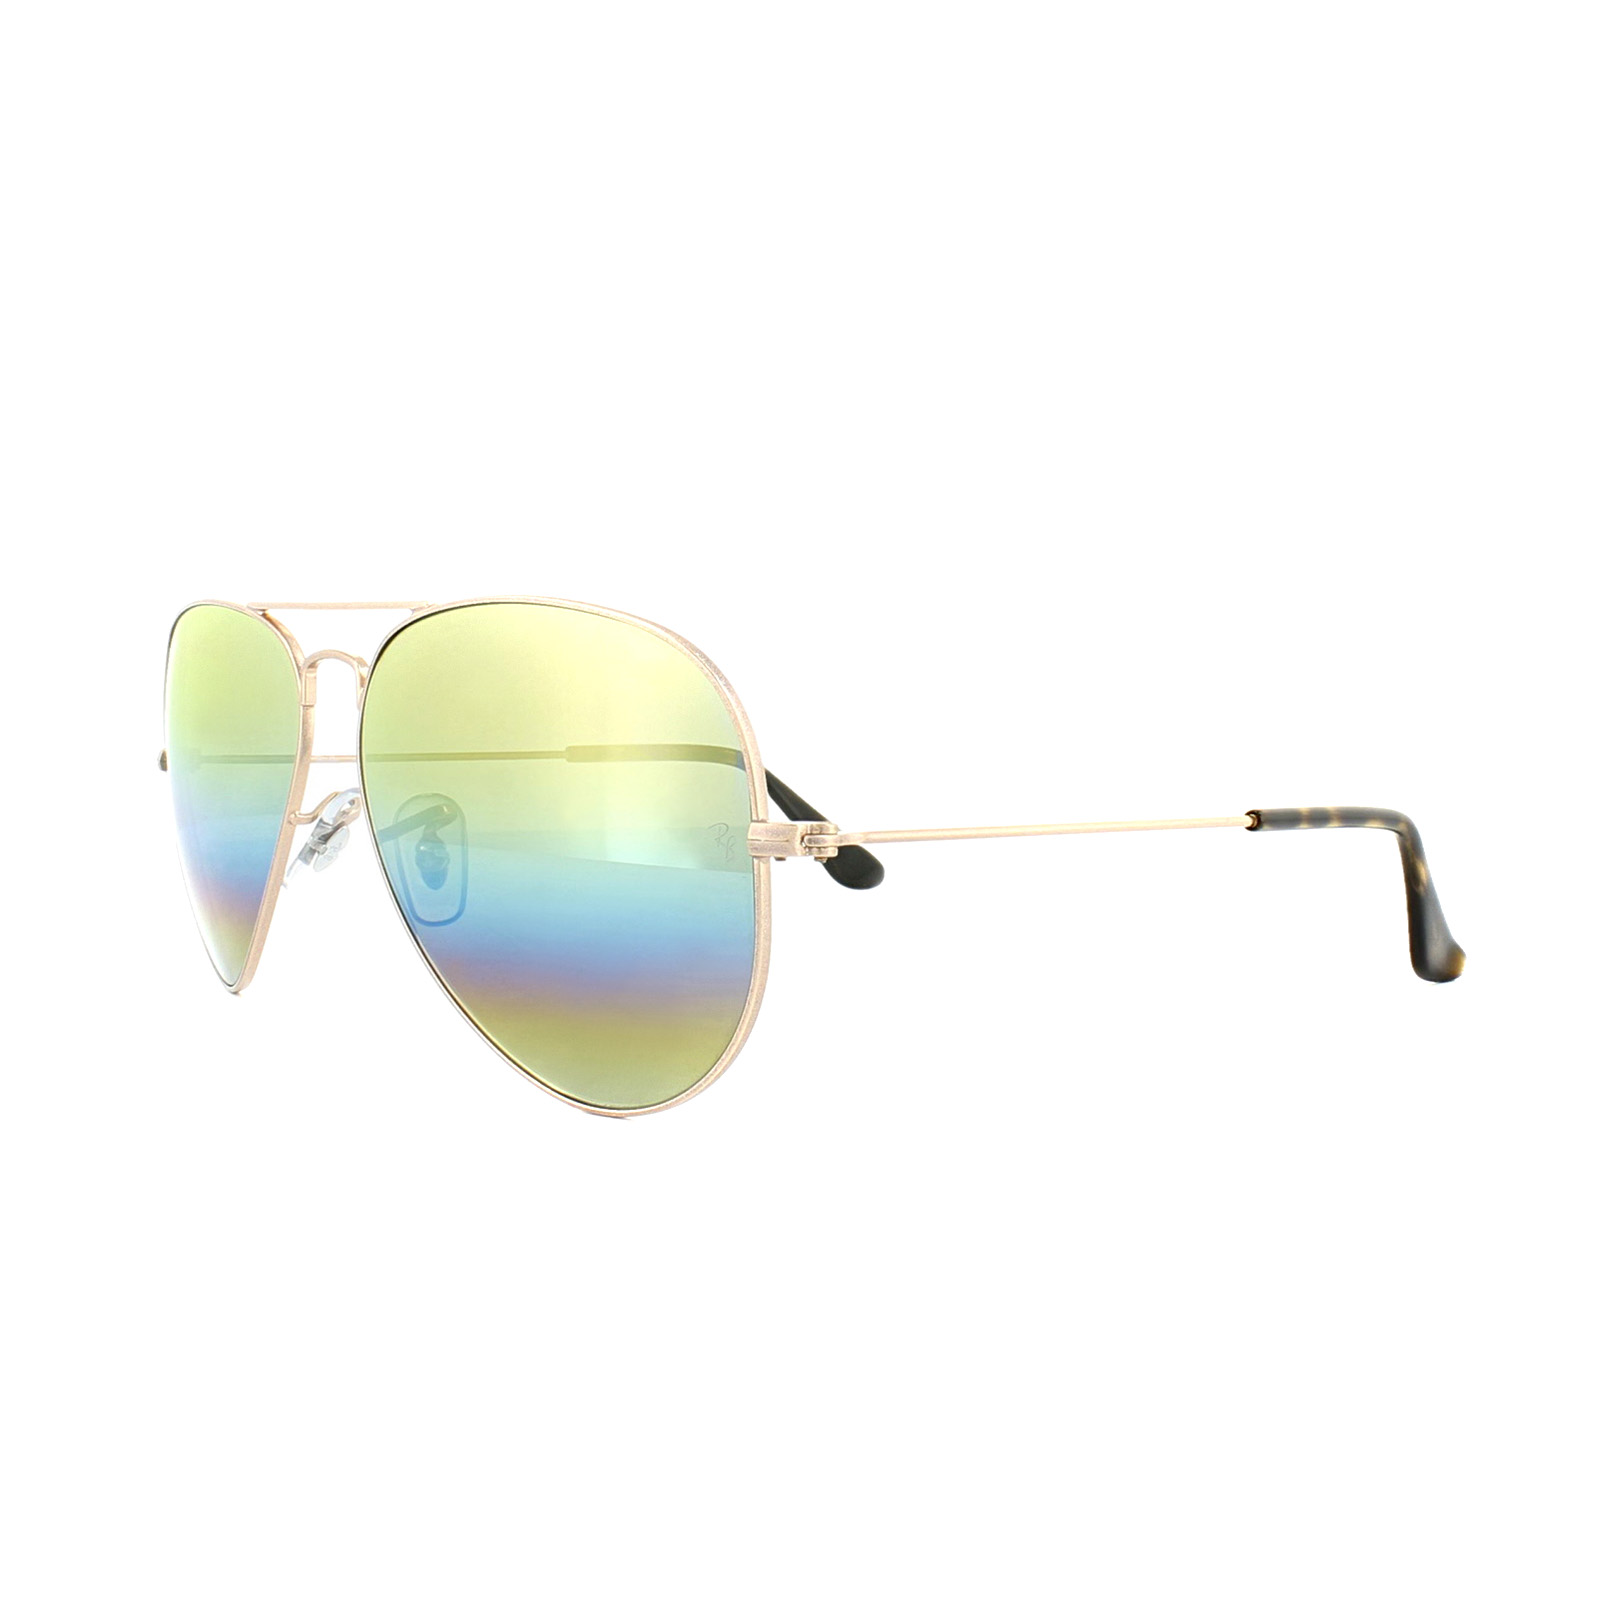 69c02122ab Sentinel Ray-Ban Sunglasses Aviator Mineral Flash 3025 9020C4 Bronze Copper  Gold Rainbow